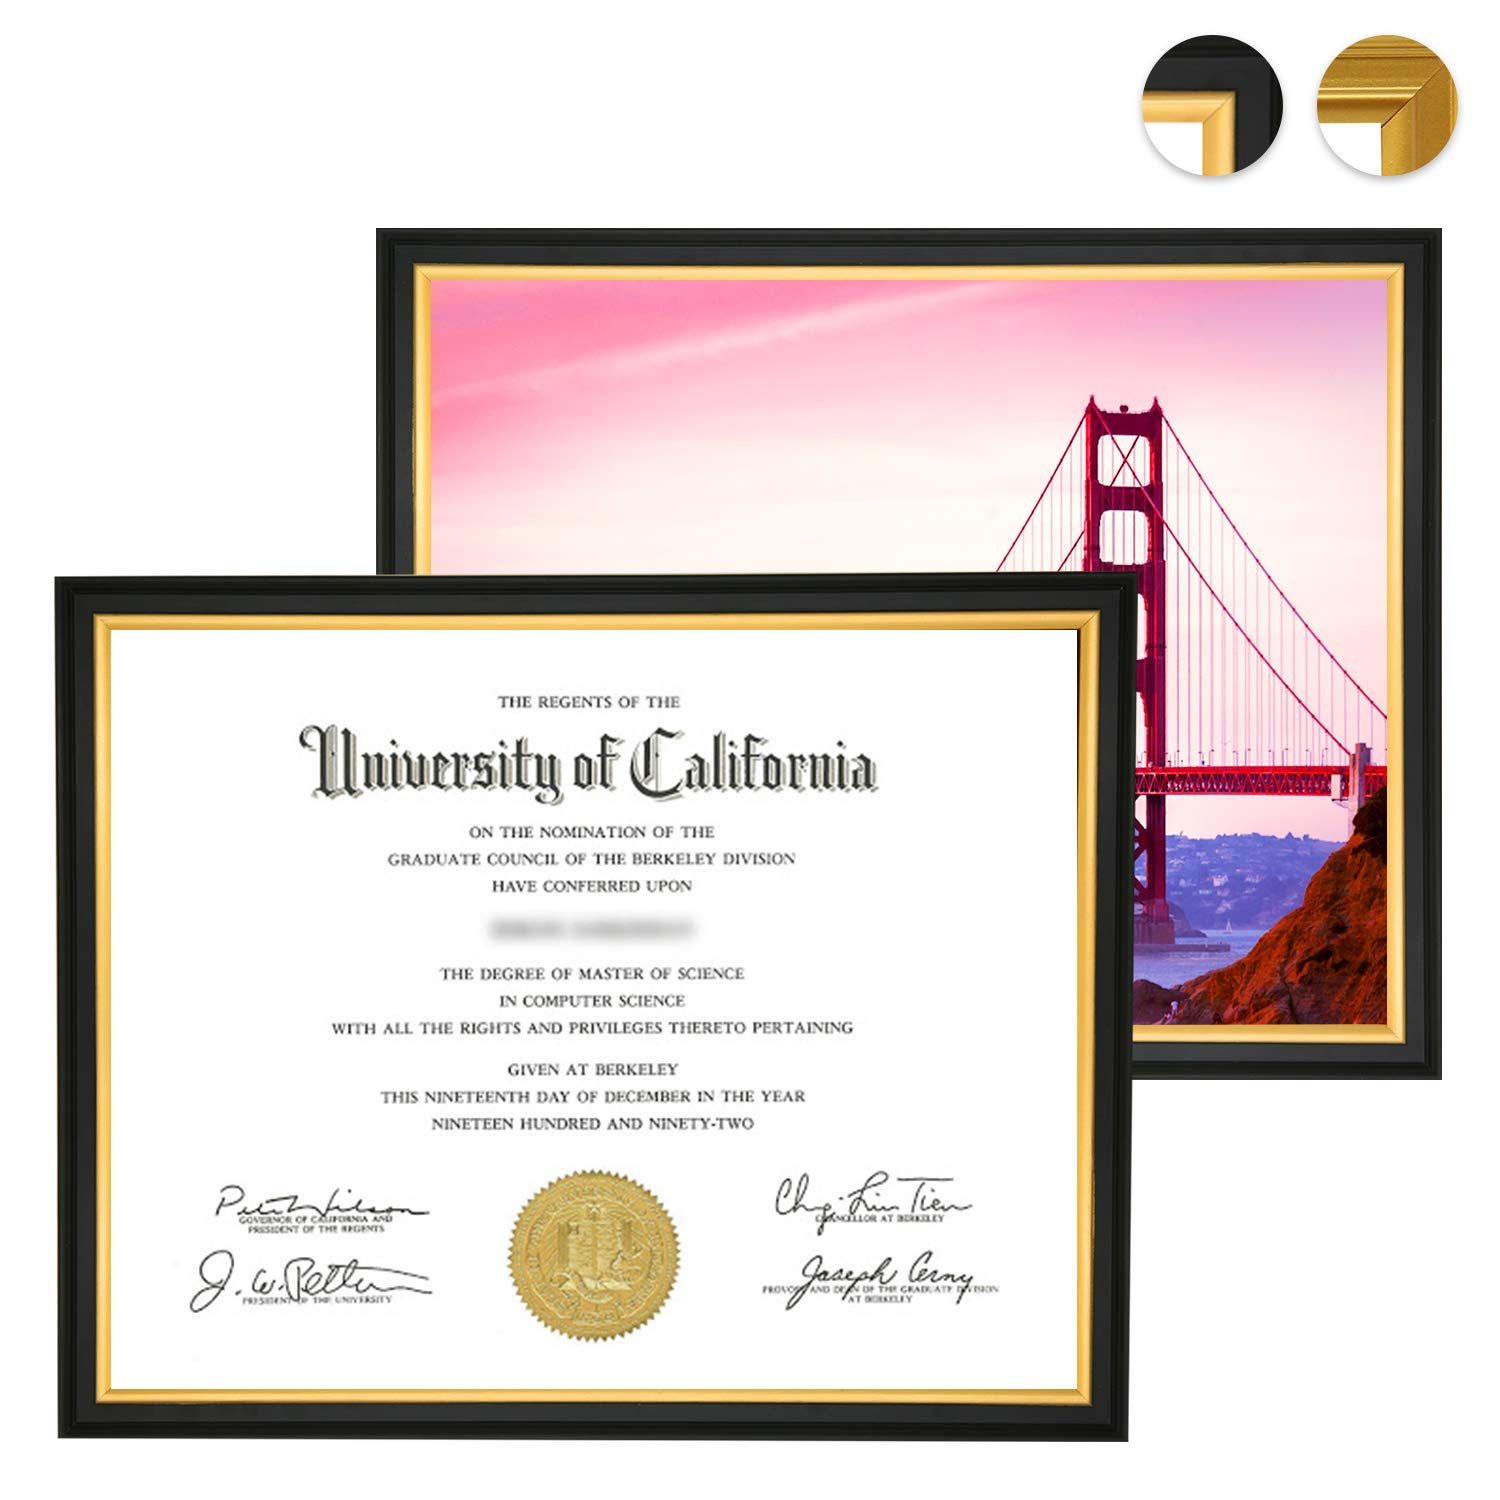 CREKERT Diploma Frame 8.5 x 11 Frame for Picture Documents Certificate Frame for Wall and Desk Real Solid Wood Golden Rim (Black Gold, 2 Pack)